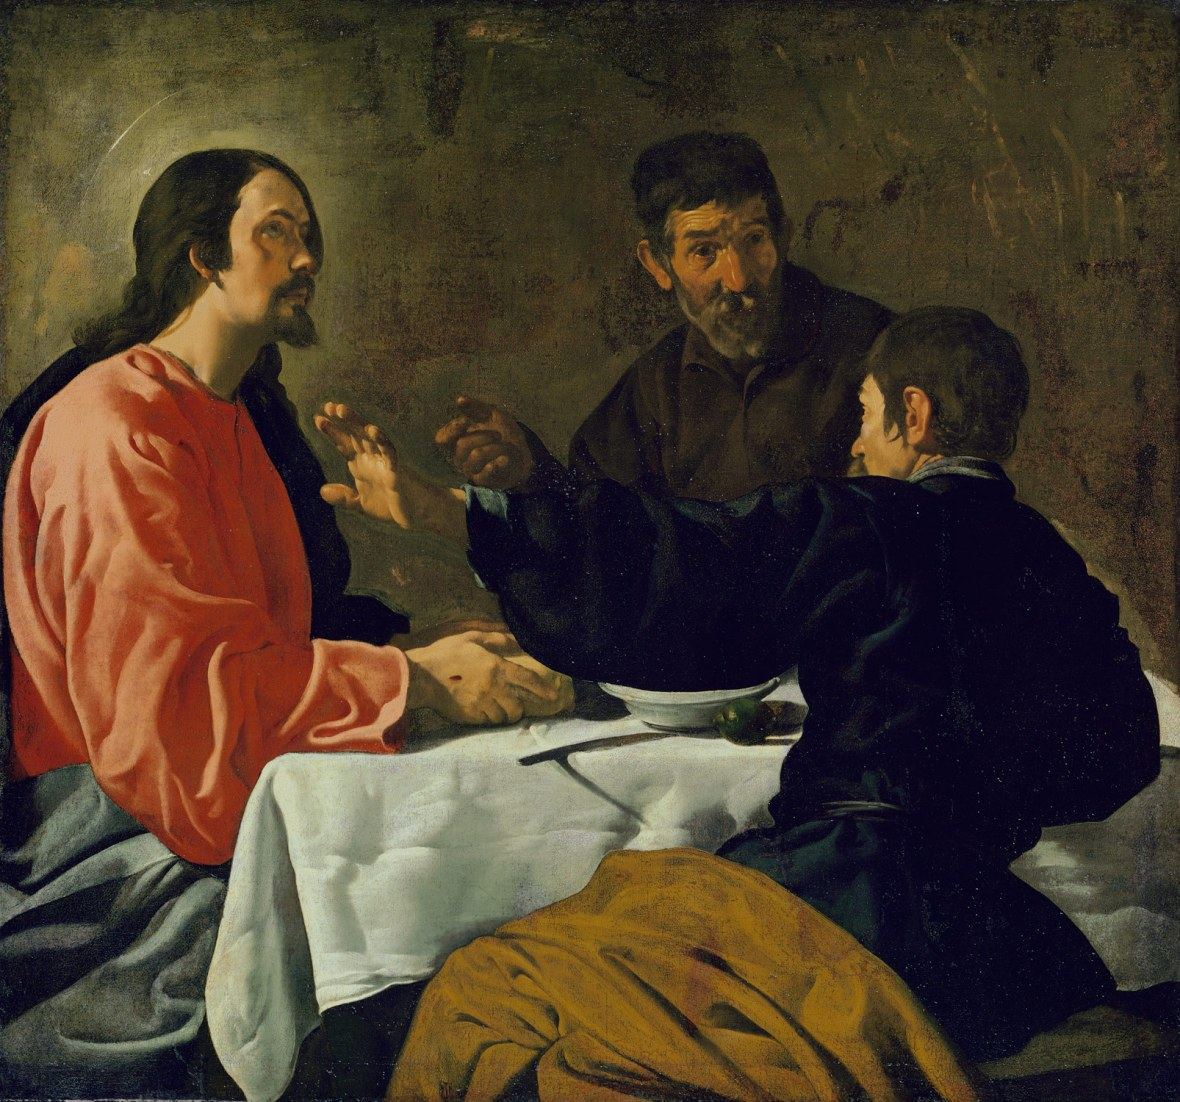 Supper at Emmaus created between 1622 and 1623